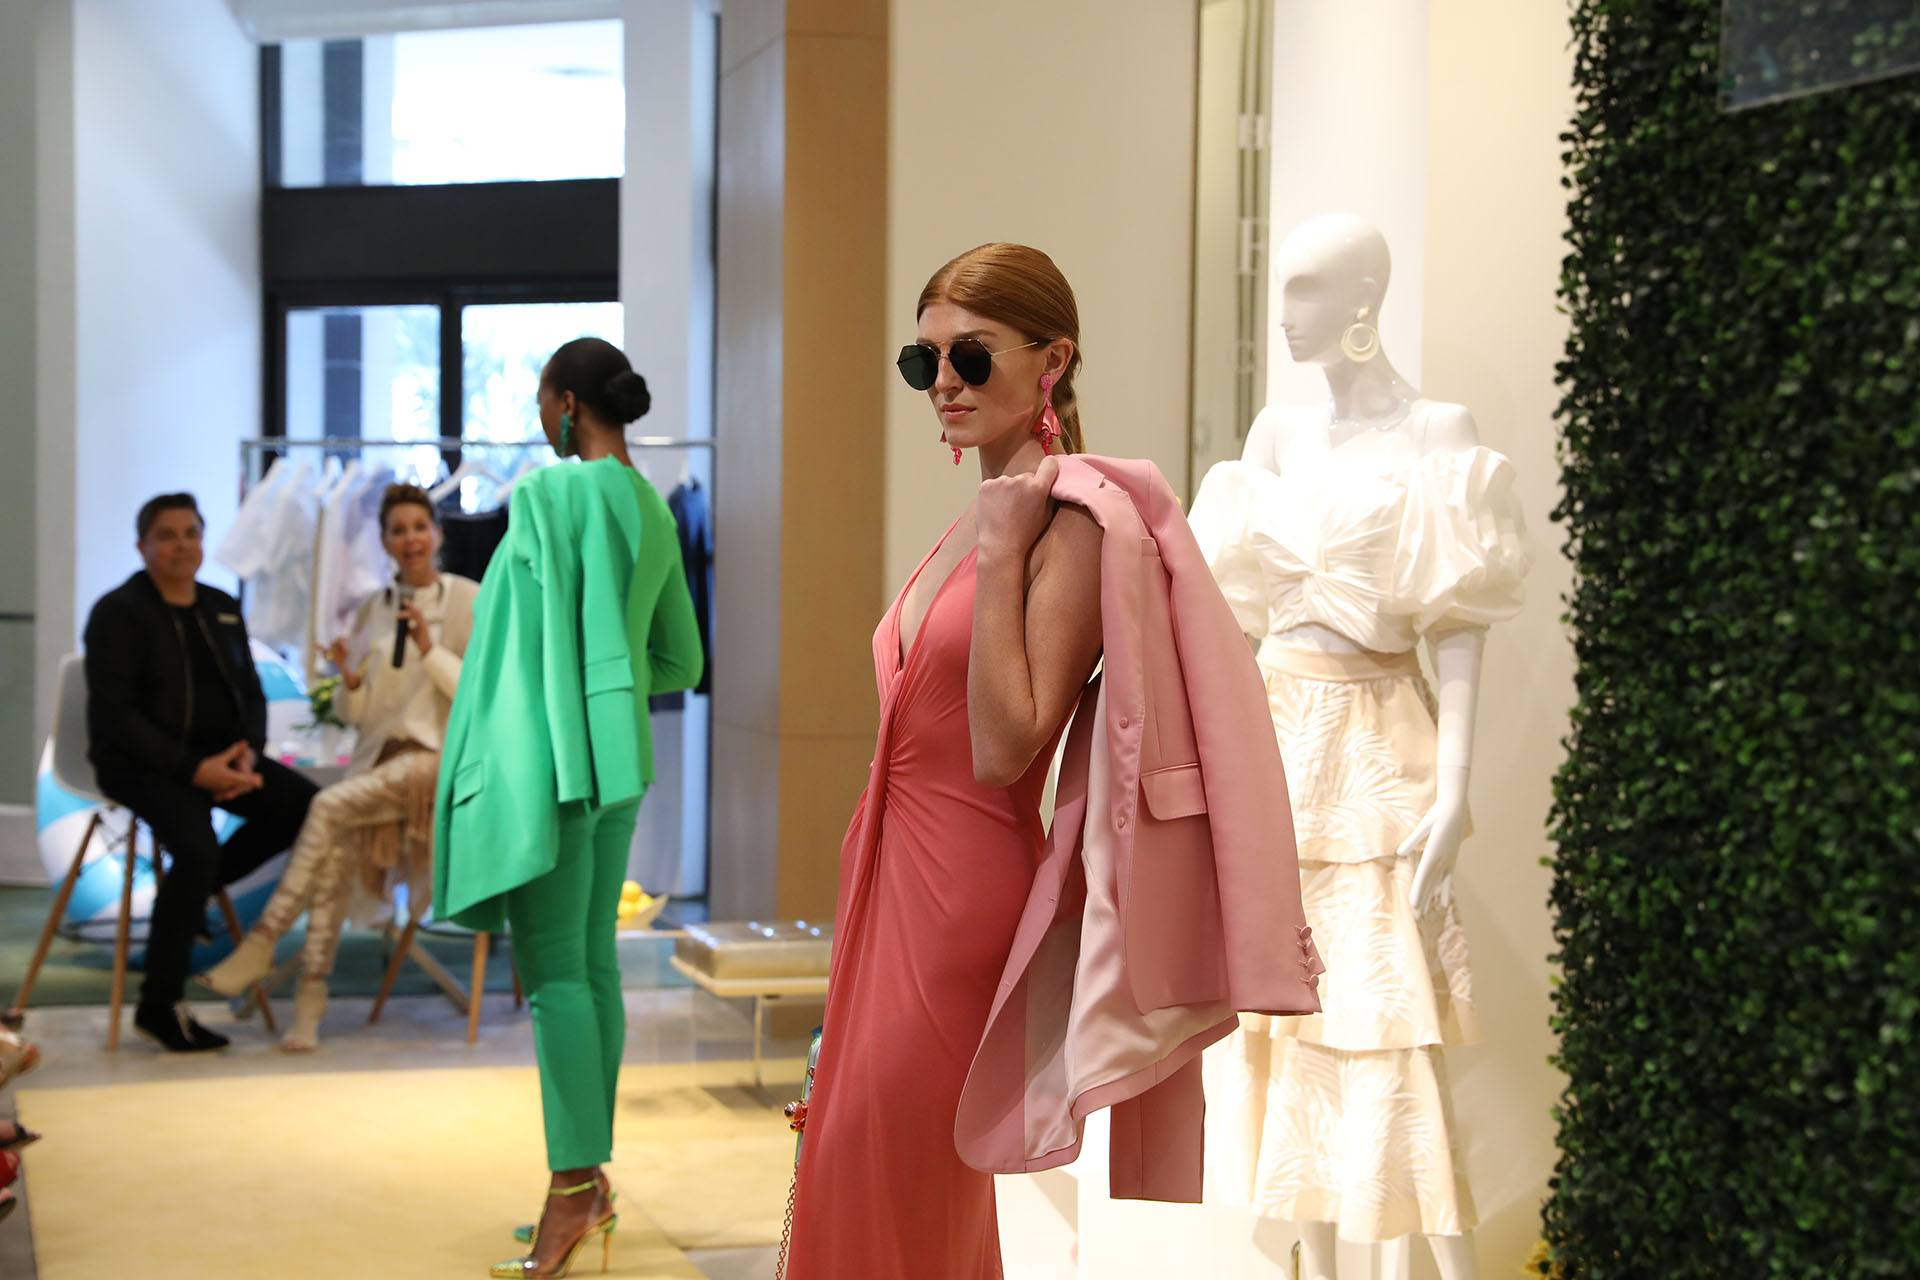 Models in the latest Spring 2019 collection from Neiman Marcus Bal Harbour